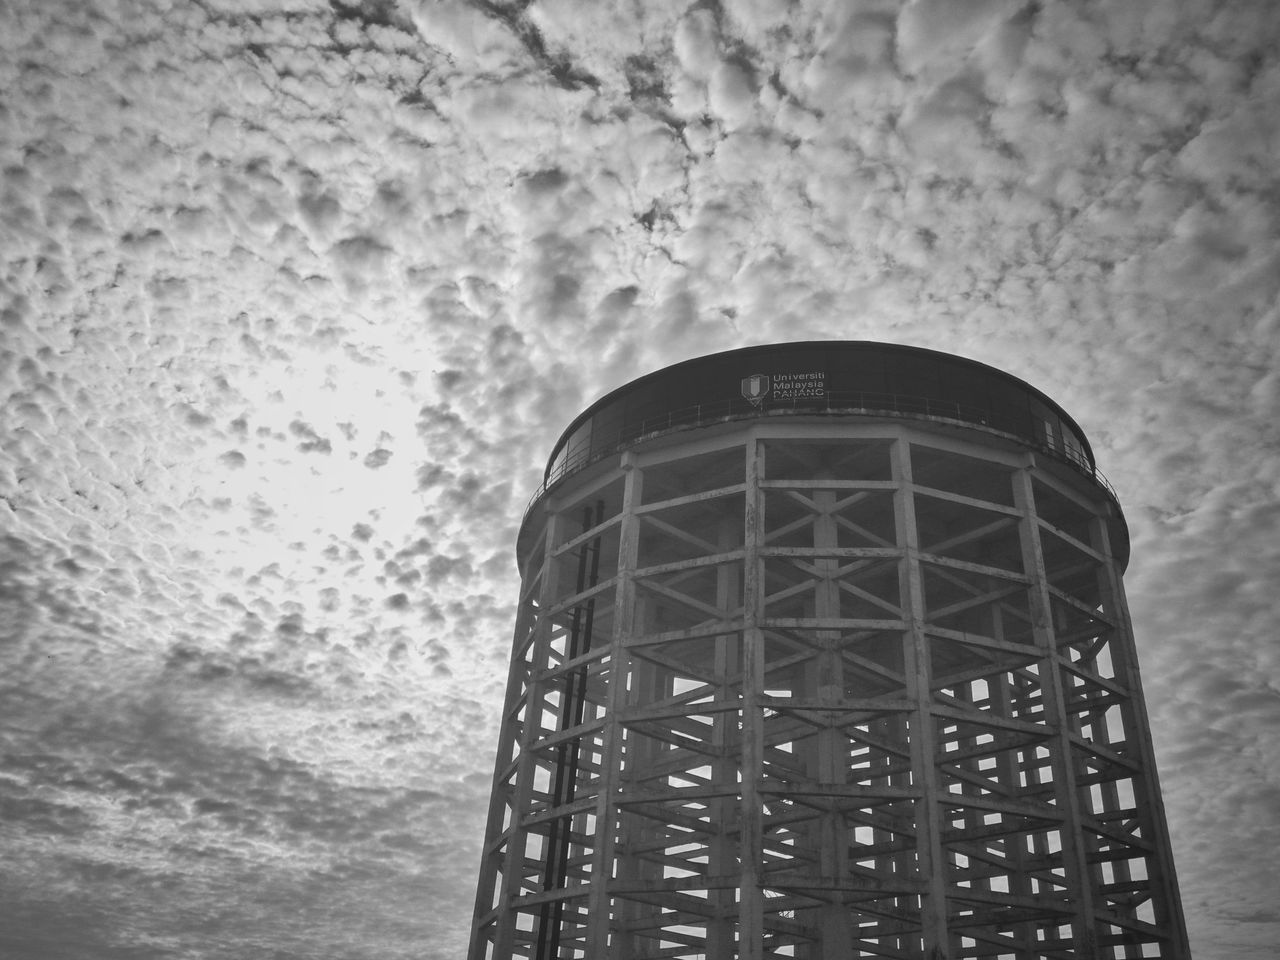 built structure, architecture, window, sky, storage tank, building exterior, day, no people, low angle view, outdoors, water tower - storage tank